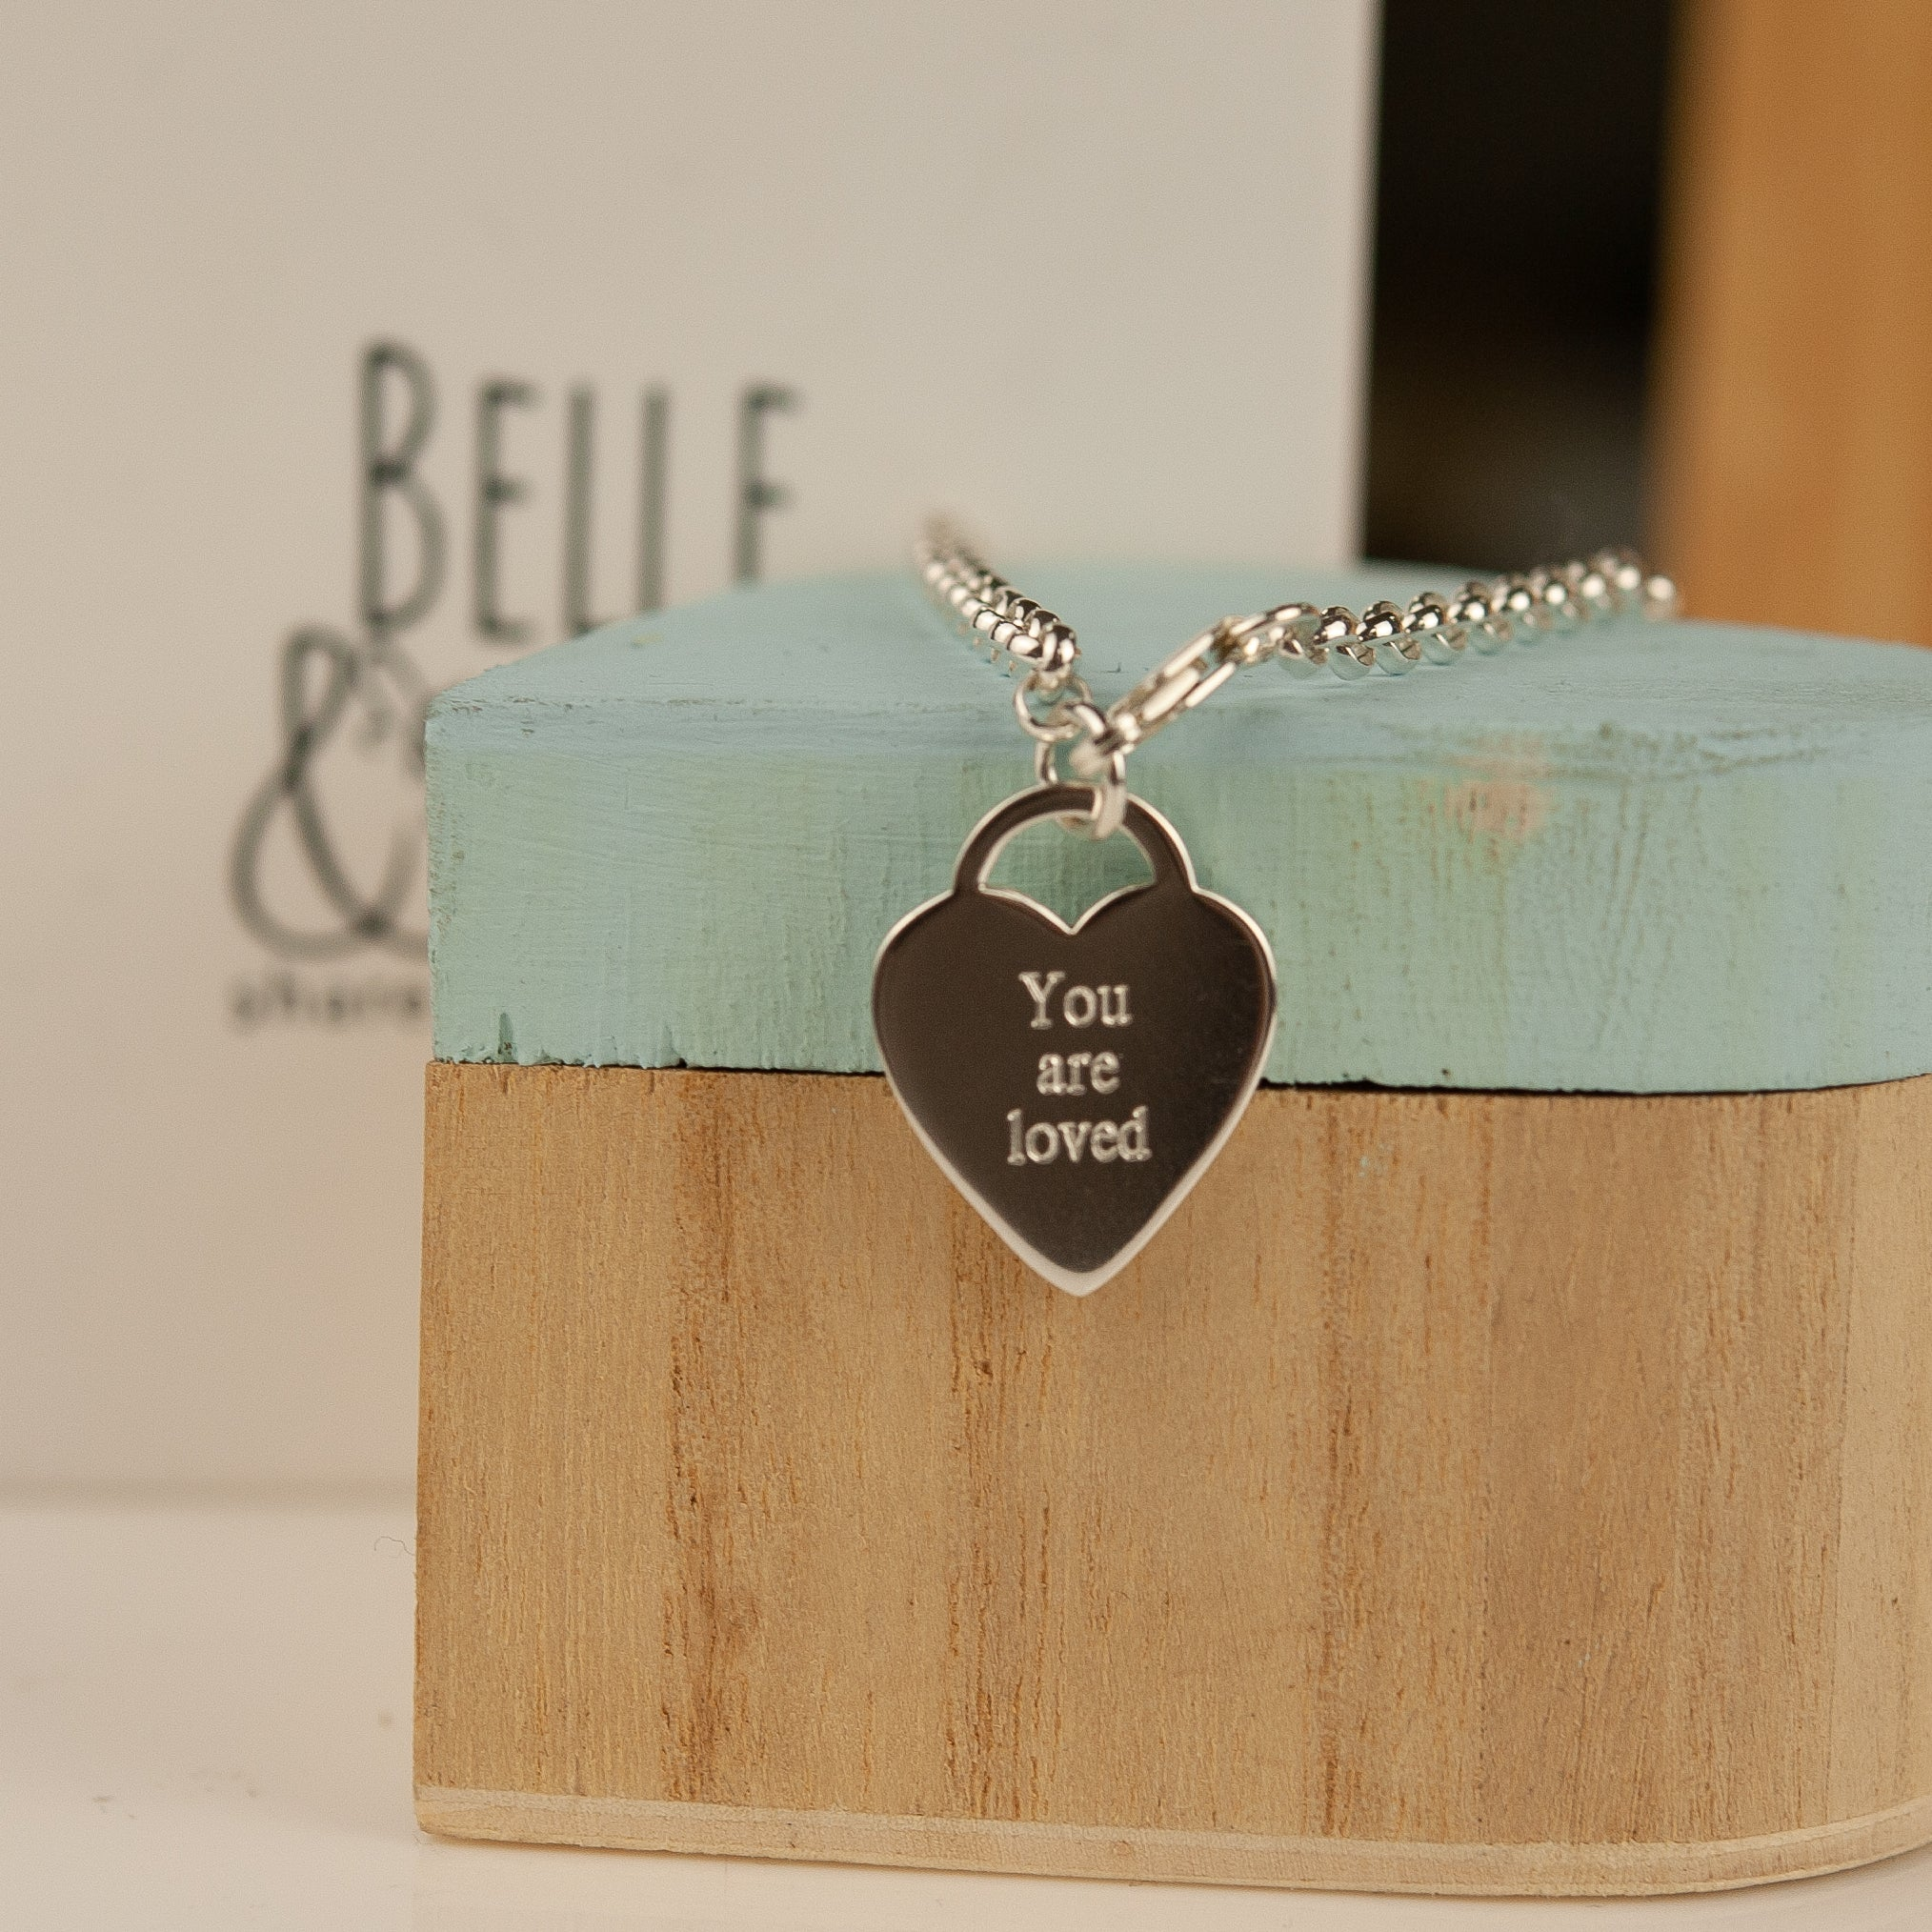 Belle & Bee You are Loved heart bracelet